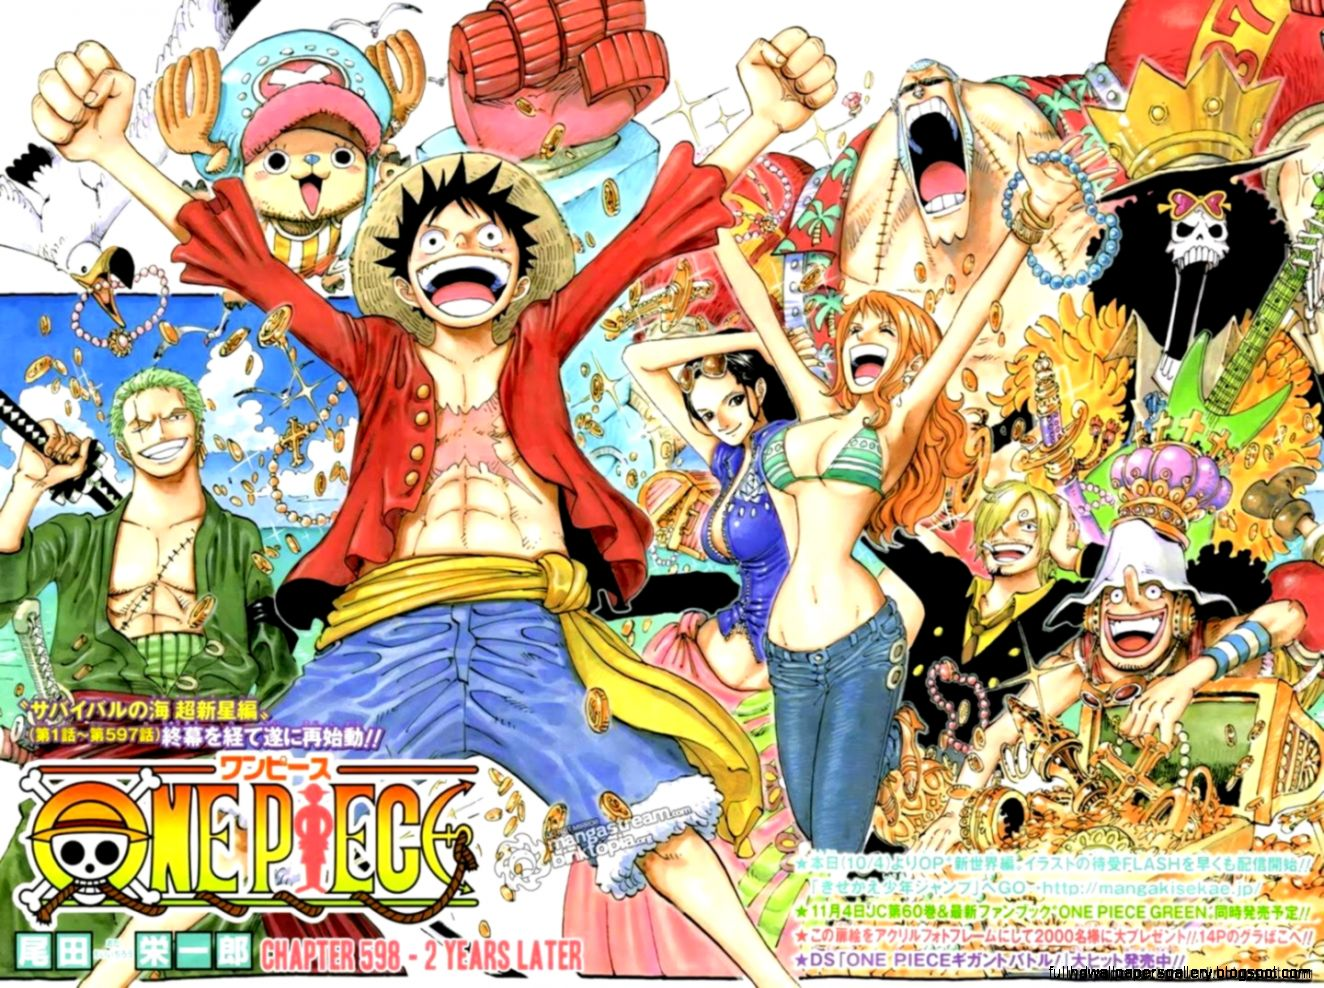 One Piece Wallpaper After 2 Years Free Download Full Hd Wallpapers